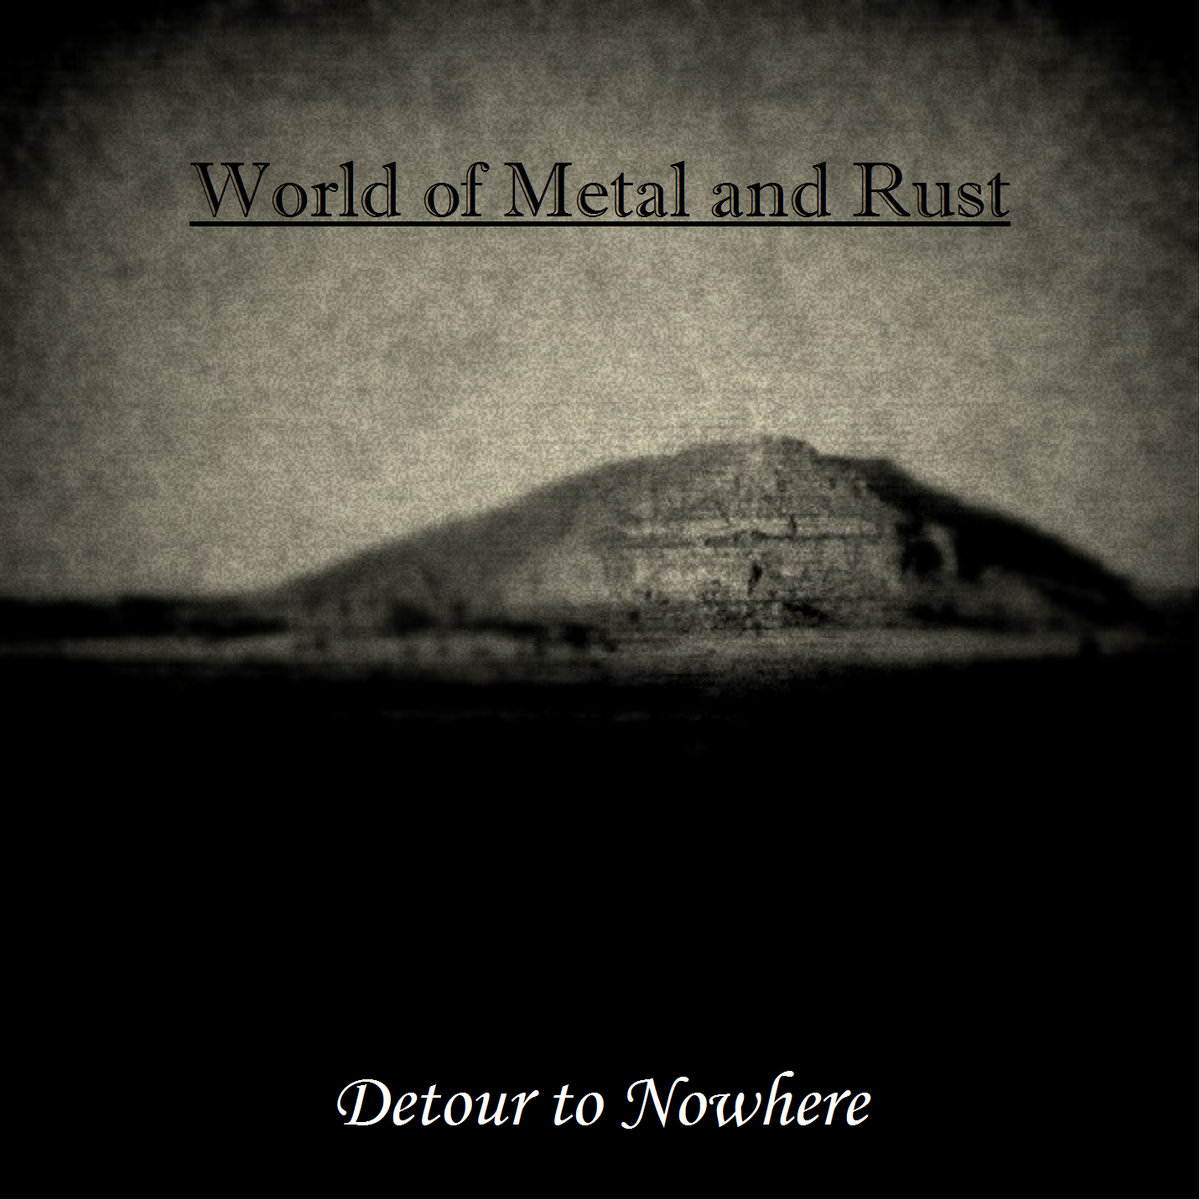 World of Metal and Rust - Detour to Nowhere artwork